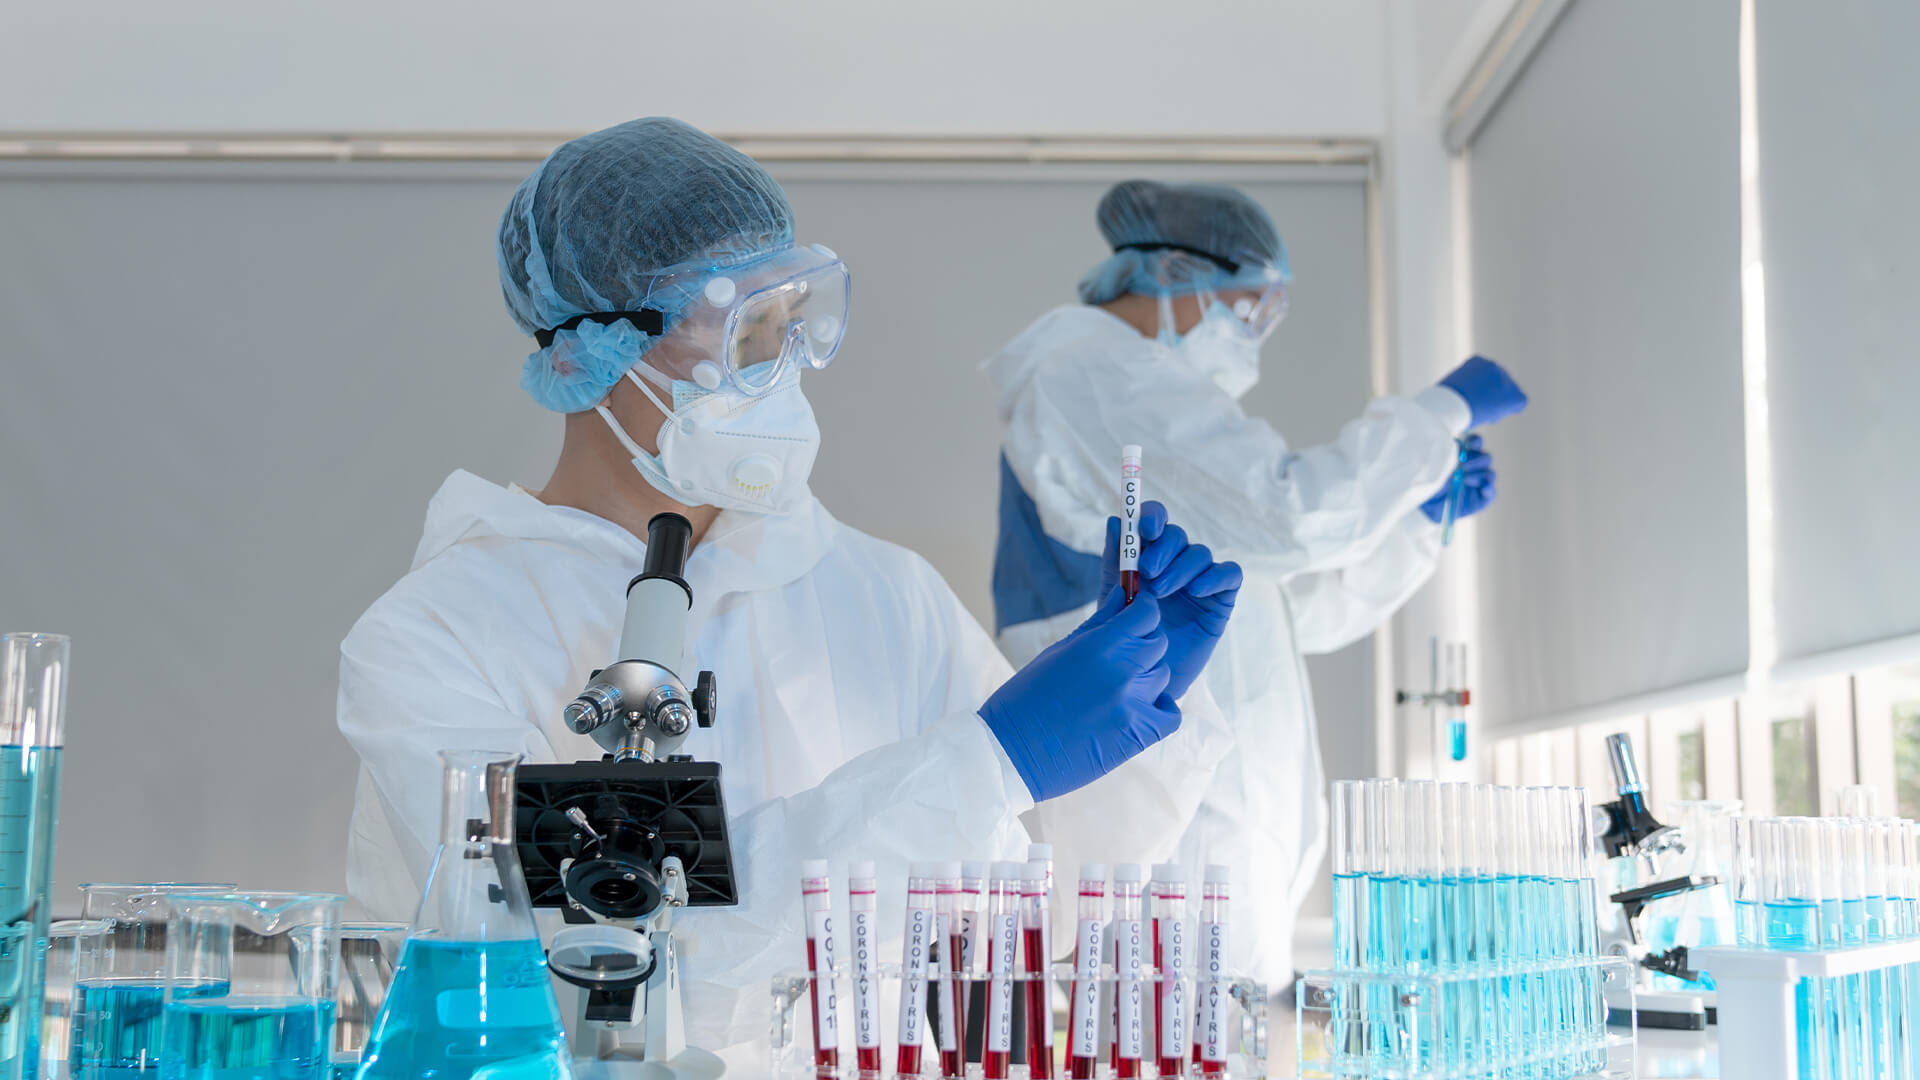 4 Ways to Protect Yourself From Bloodborne Pathogens